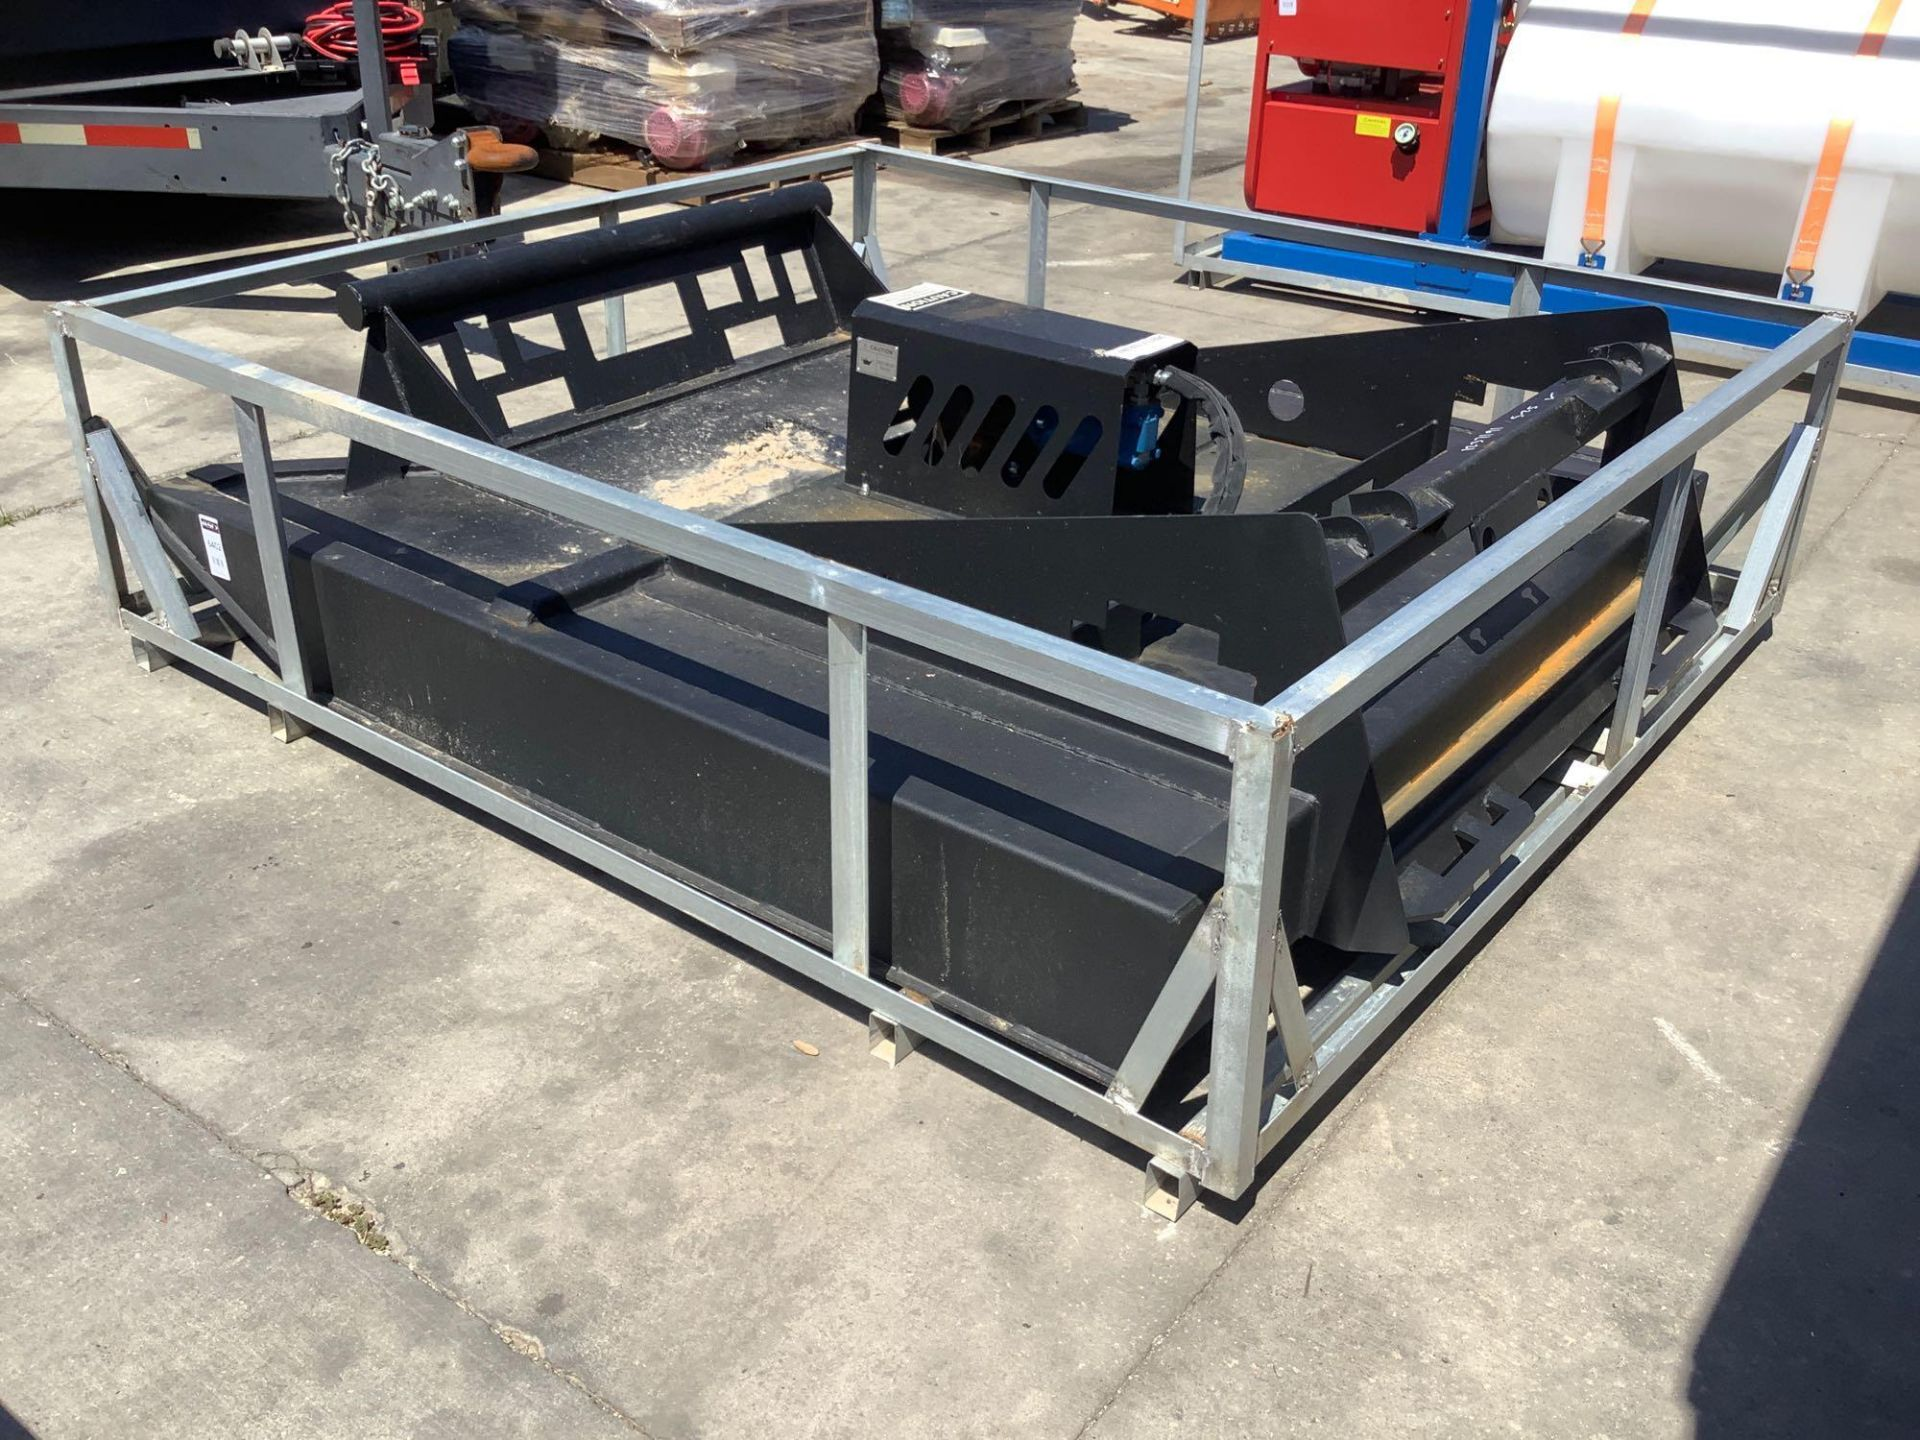 UNUSED BRUSH CUTTER ATTACHMENT FOR SKID STEER APPROX 77IN LONG x 70IN WIDE - Image 2 of 5